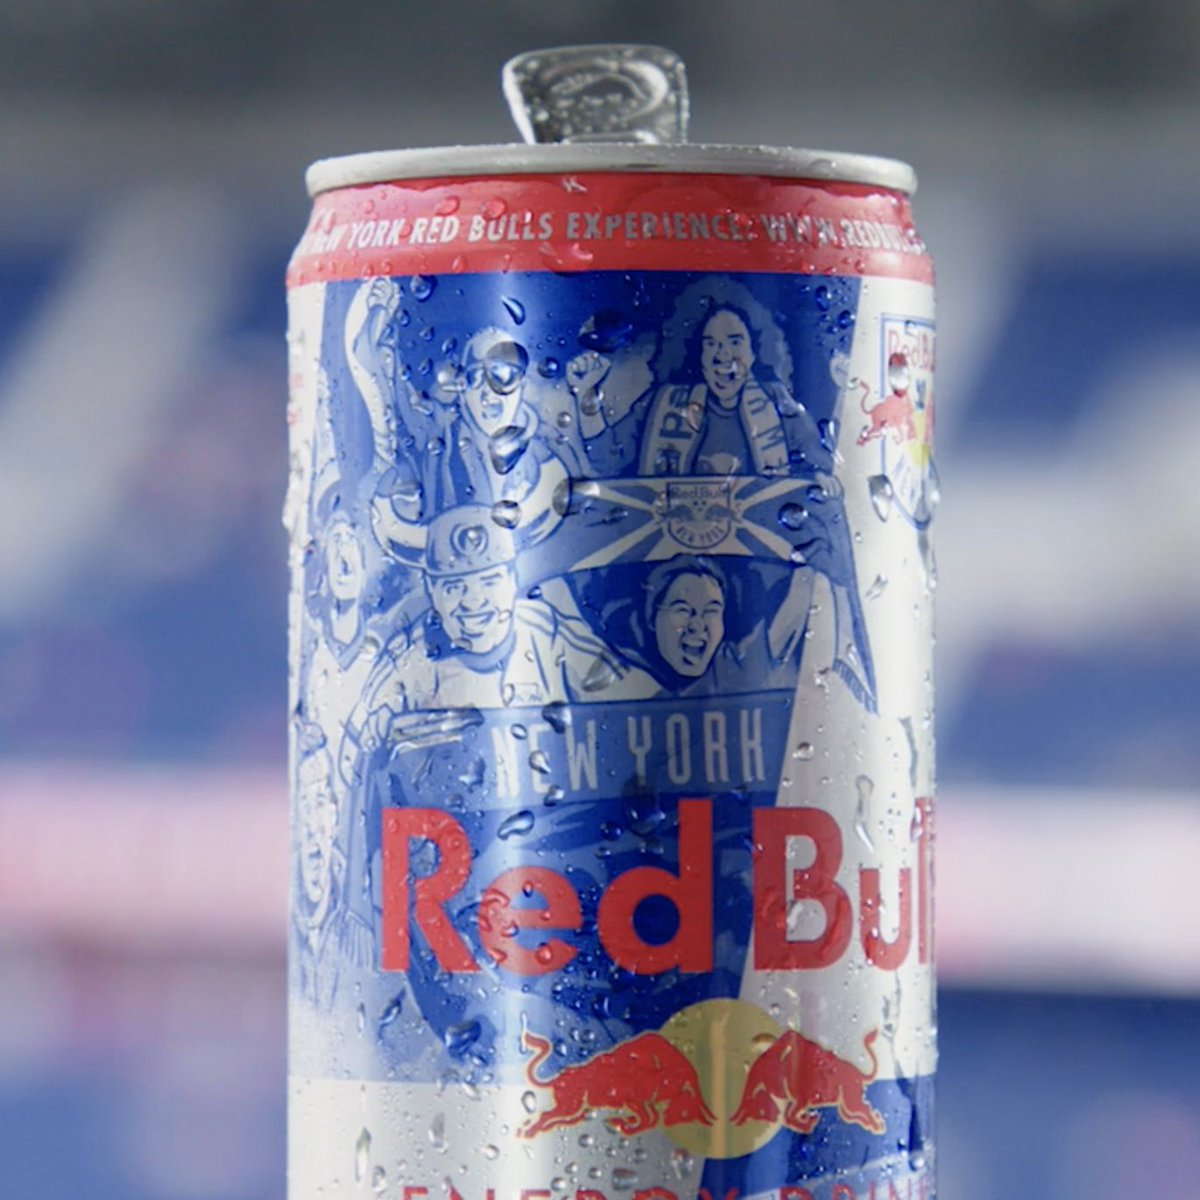 Next time you pick up a Red Bull, you might see some supporters you recognize… Limited edition @Red Bull x #RBNY Supporters Cans are hitting shelves across the tri-state area, celebrating our passionate fans and their unmatched support!